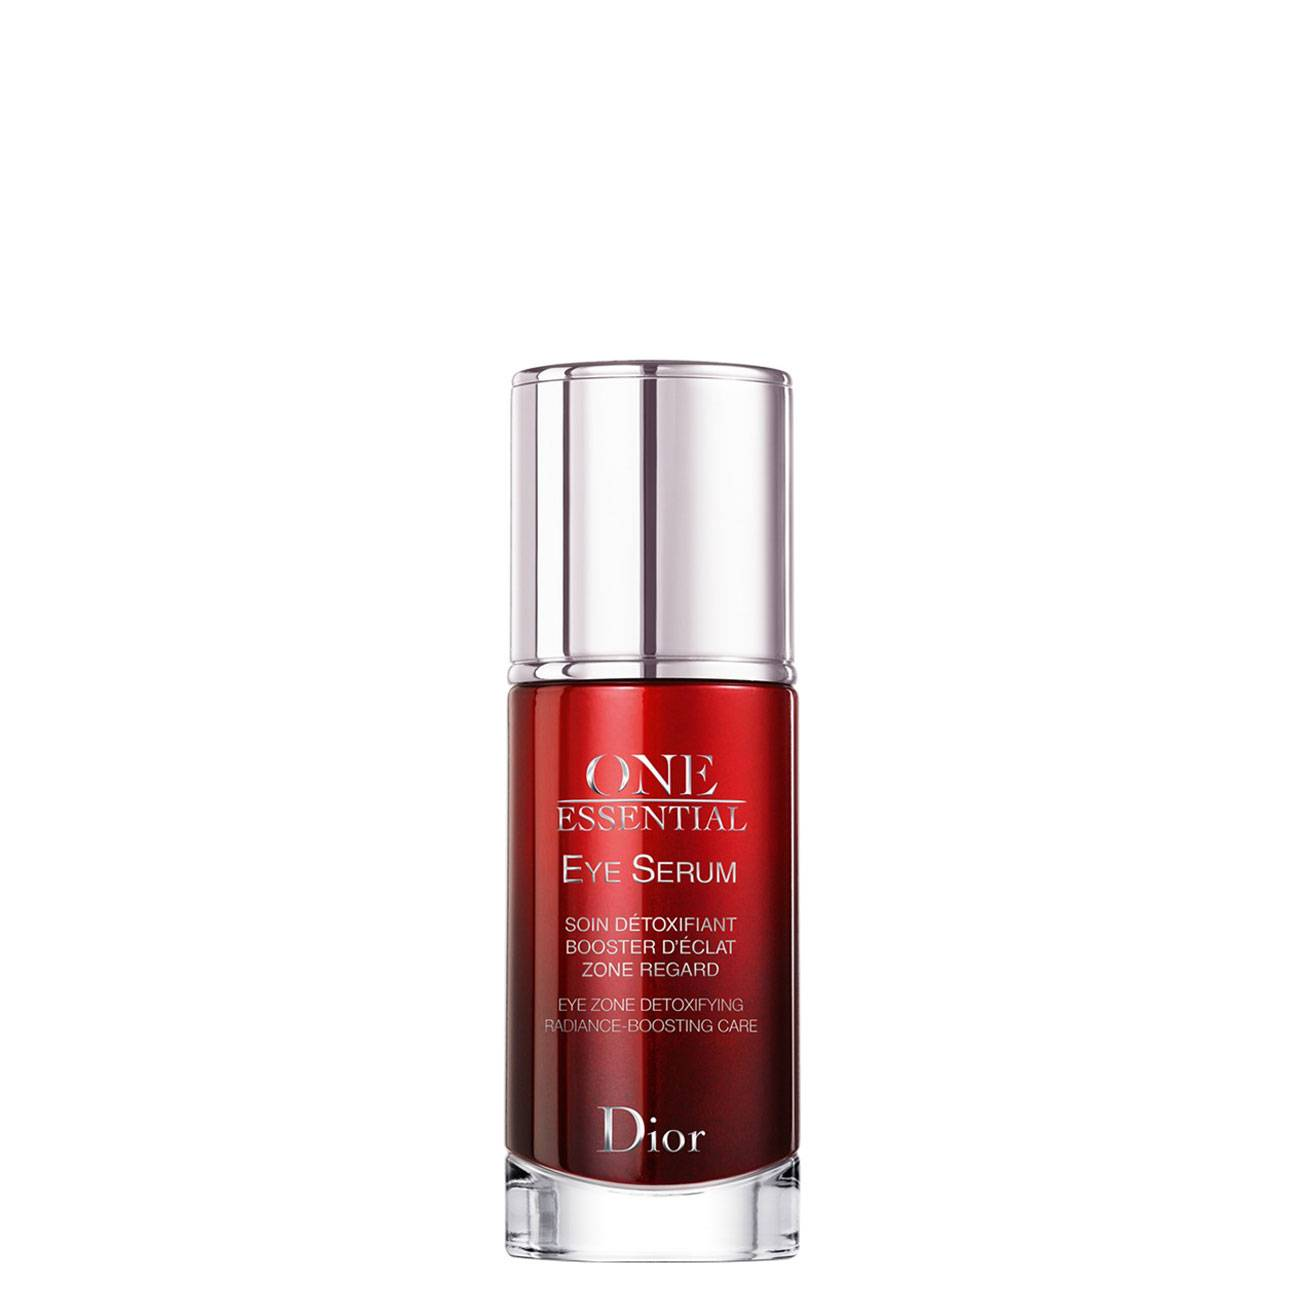 ONE ESSENTIAL EYE SERUM 15 Ml poza